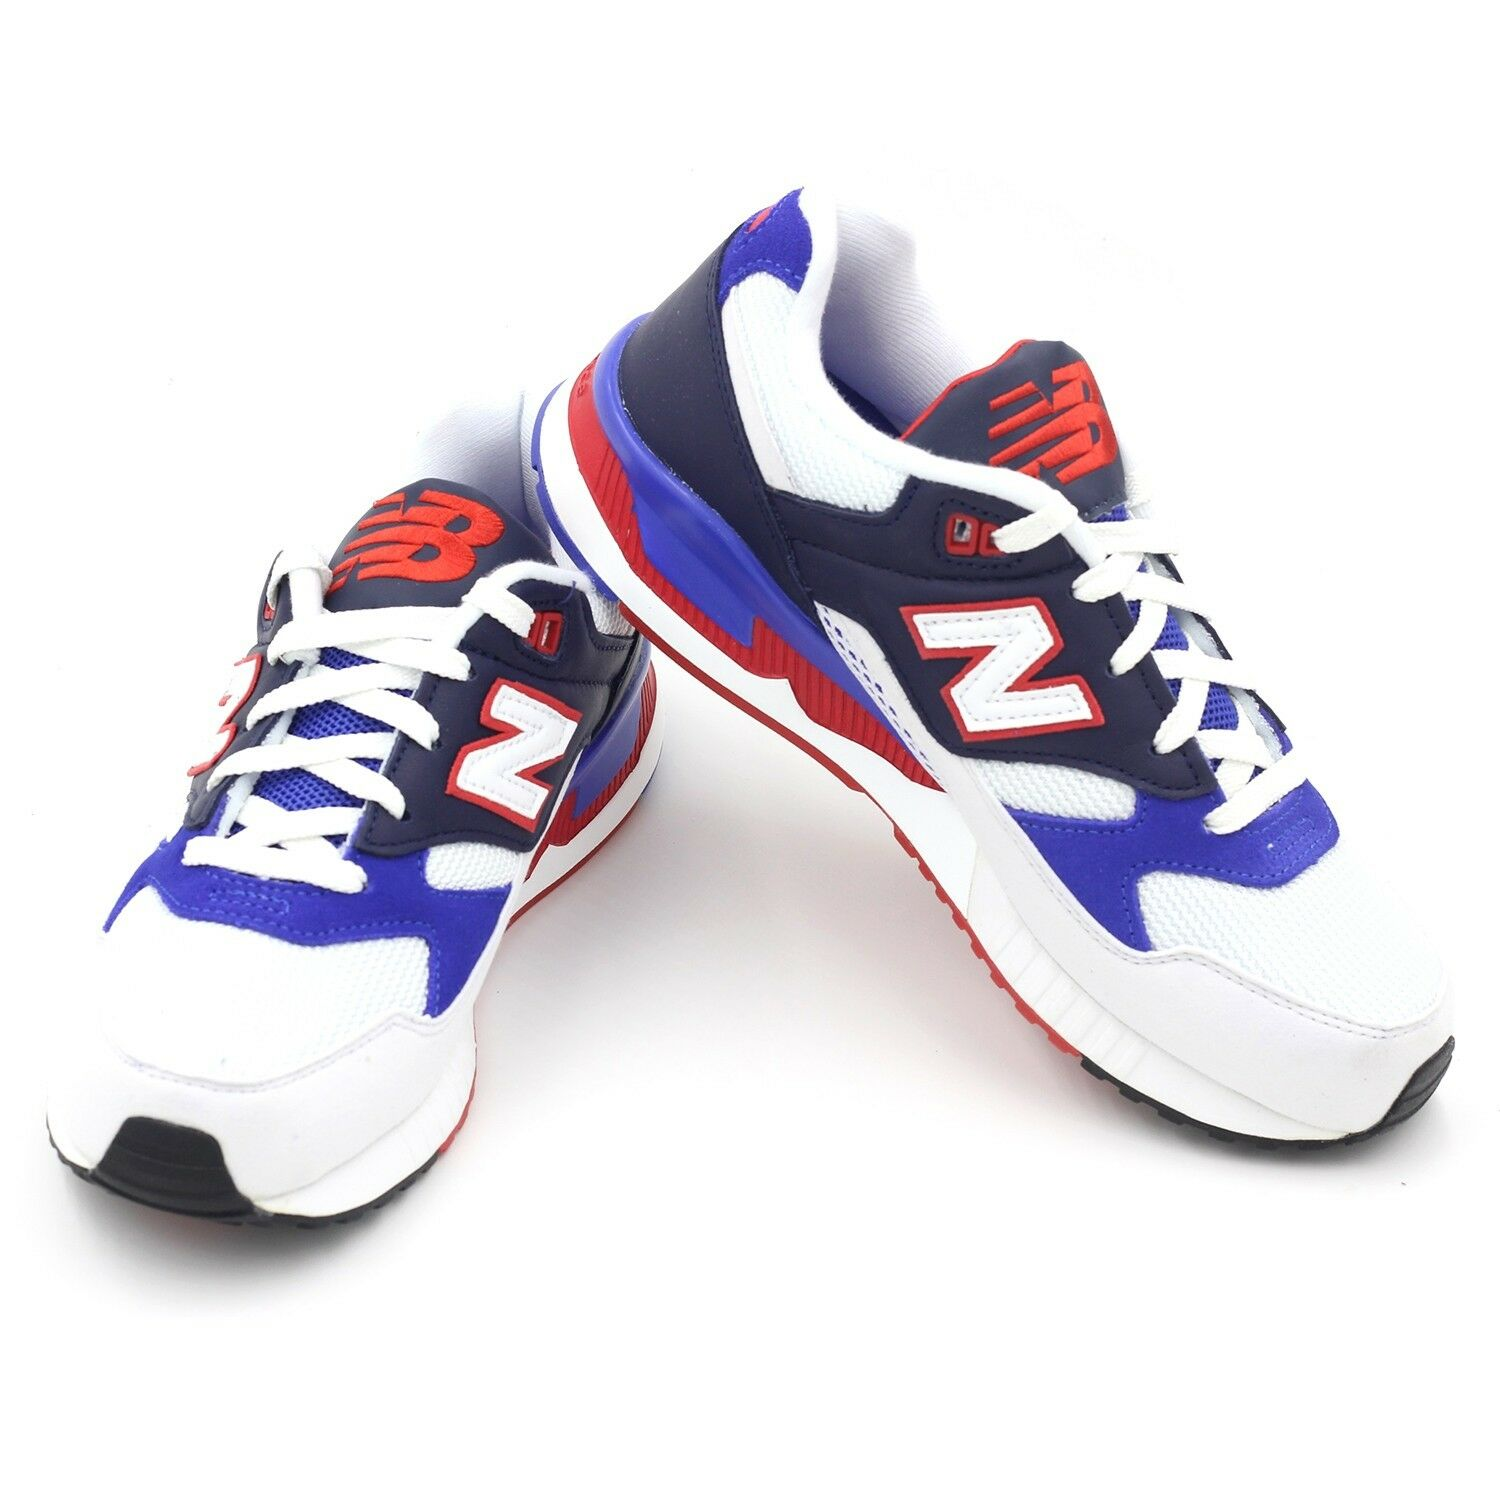 New Shoes Balance M530 Trainers Running Athletic Shoes New Size 5 M530BOC White/Blue/Red 9b226b